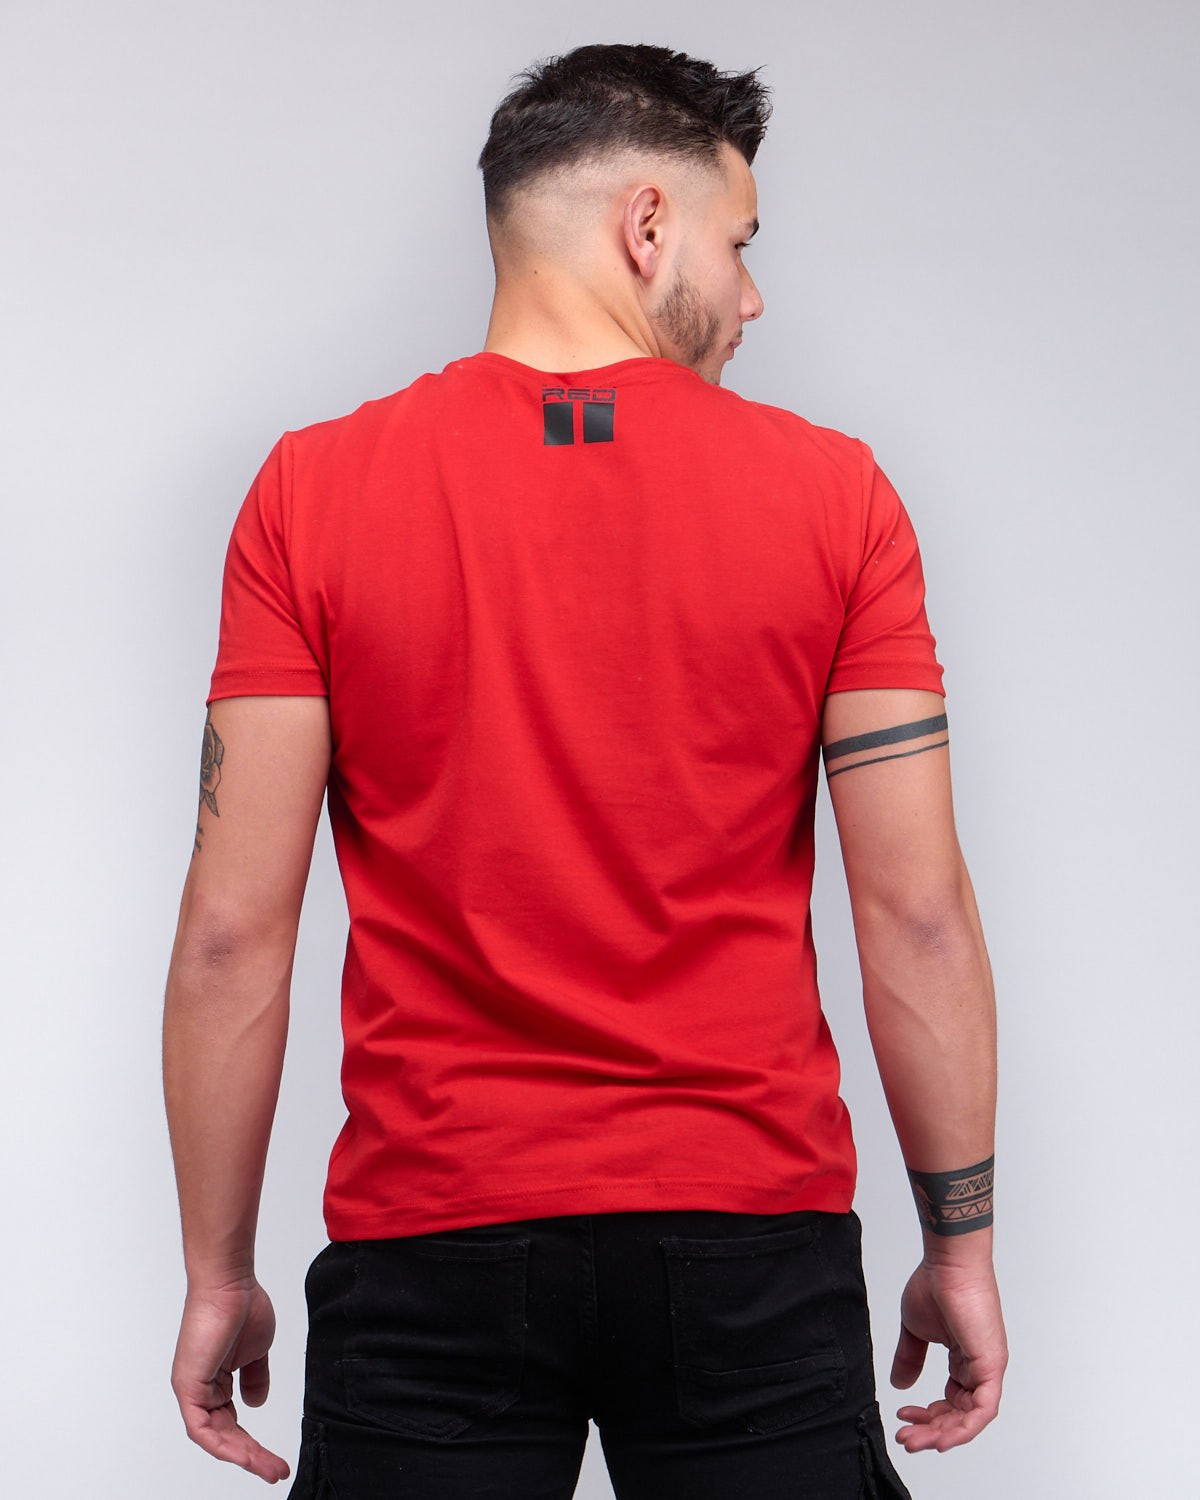 T-Shirt UNIVERSITY OF RED Red